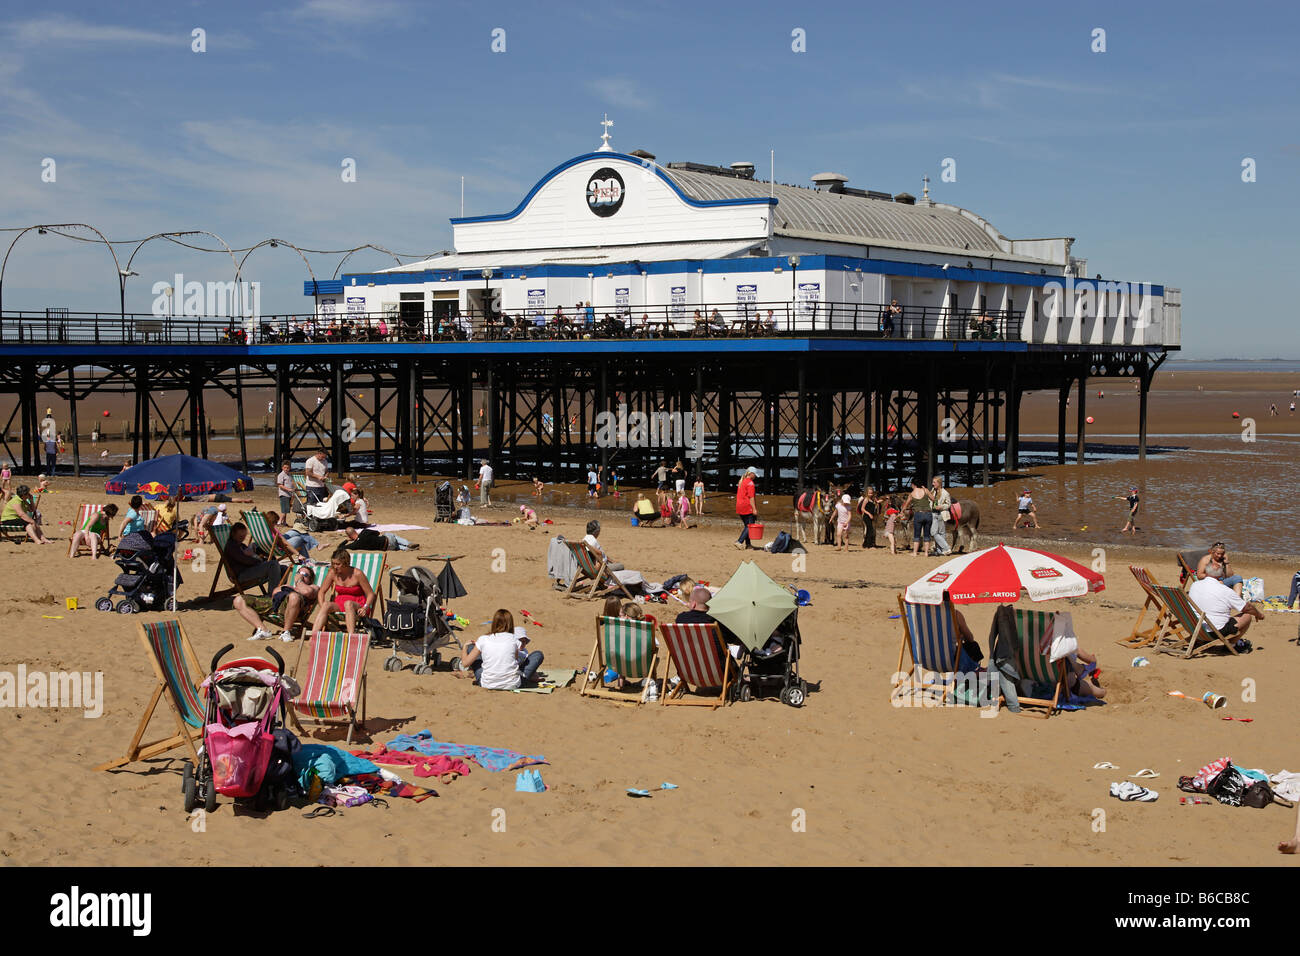 Cleethorpes traditional British seaside resort beaches Pier East Riding of Yorkshire UK Great Britain - Stock Image